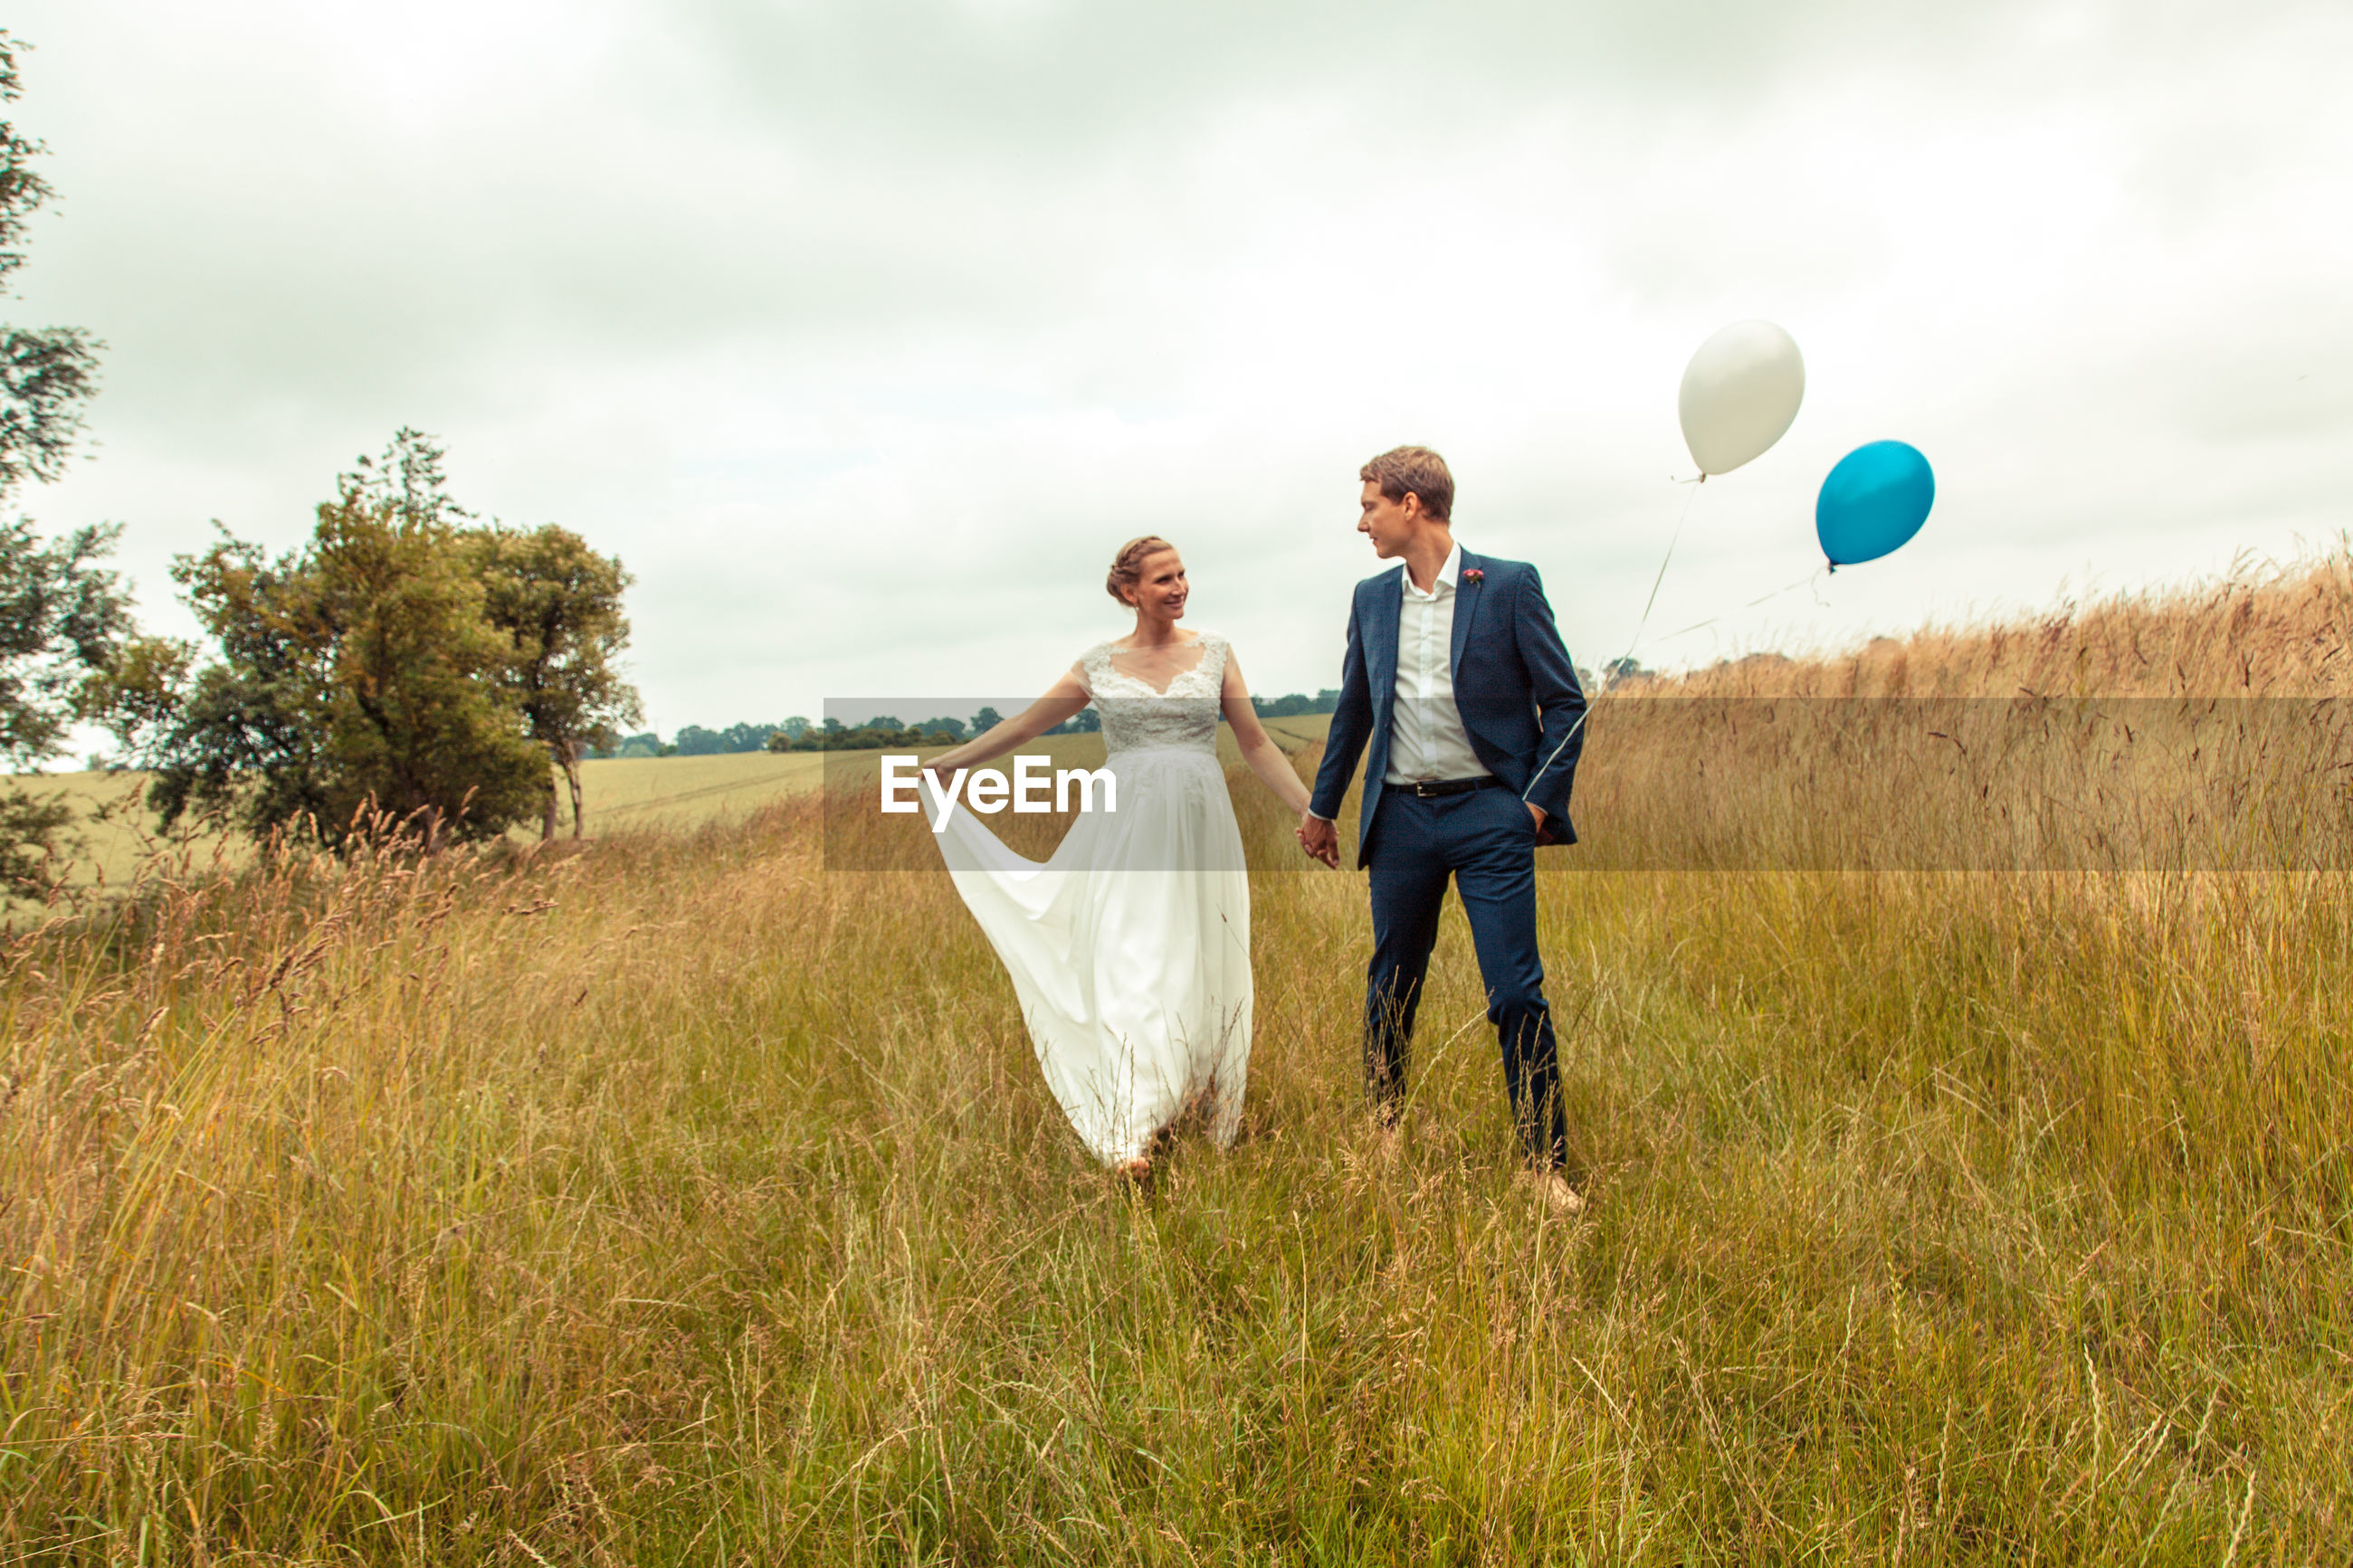 two people, togetherness, full length, sky, cloud - sky, outdoors, nature, women, adults only, bride, bridegroom, wedding, wife, wedding dress, people, adult, young women, day